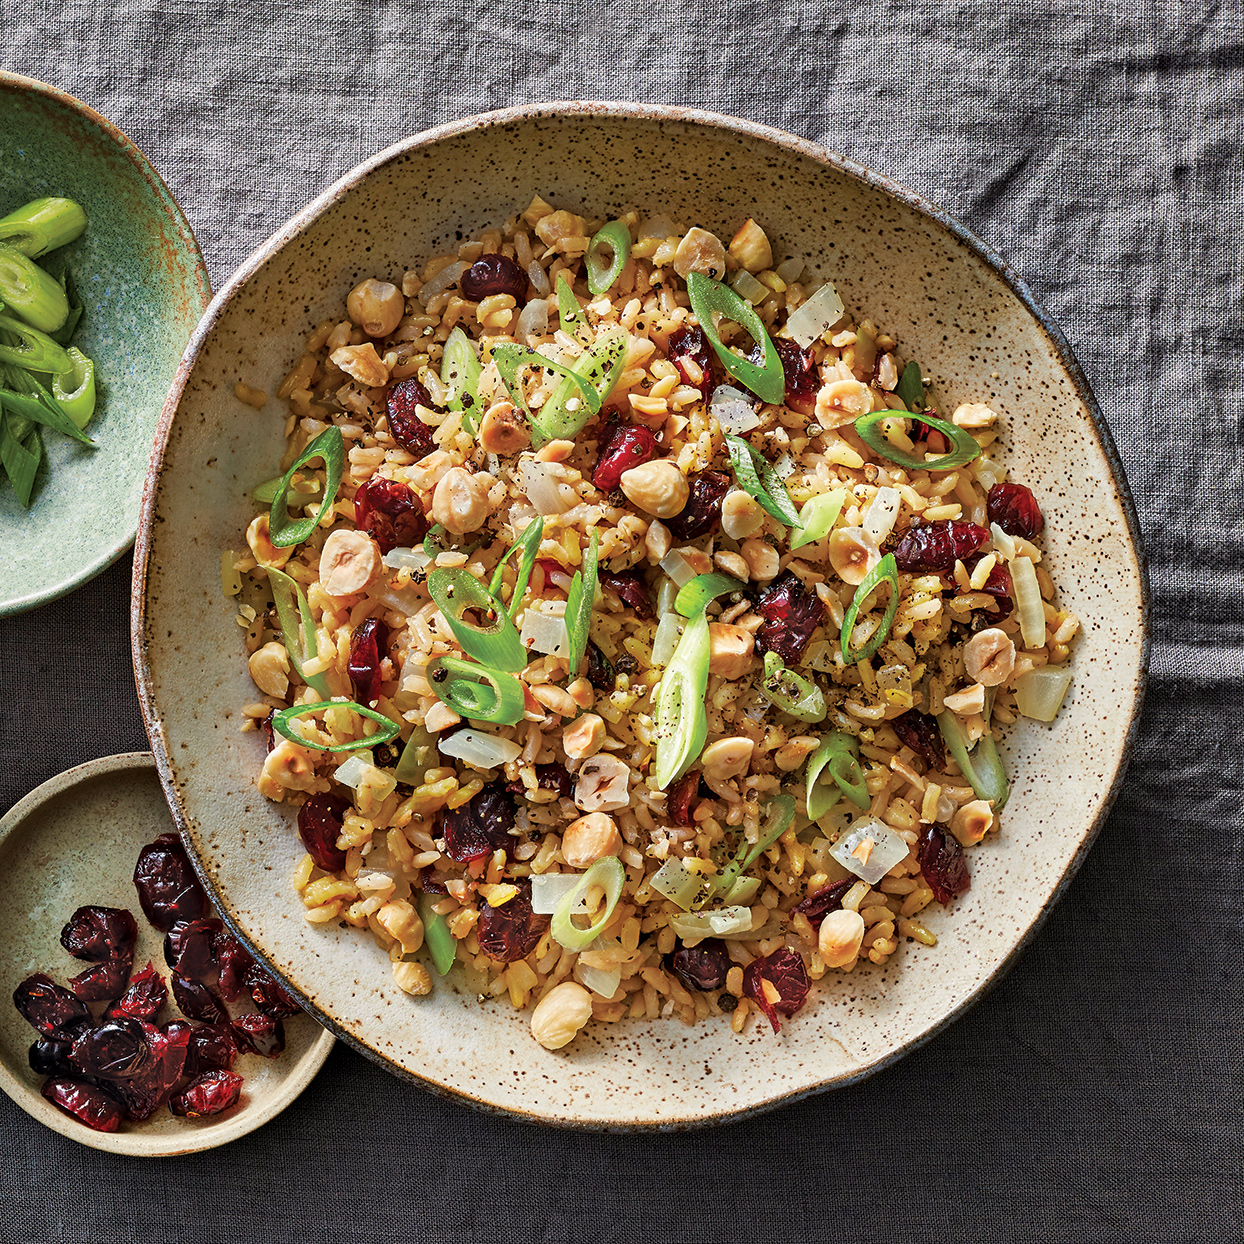 Slow-Cooker Brown Rice Pilaf with Cherries & Hazelnuts